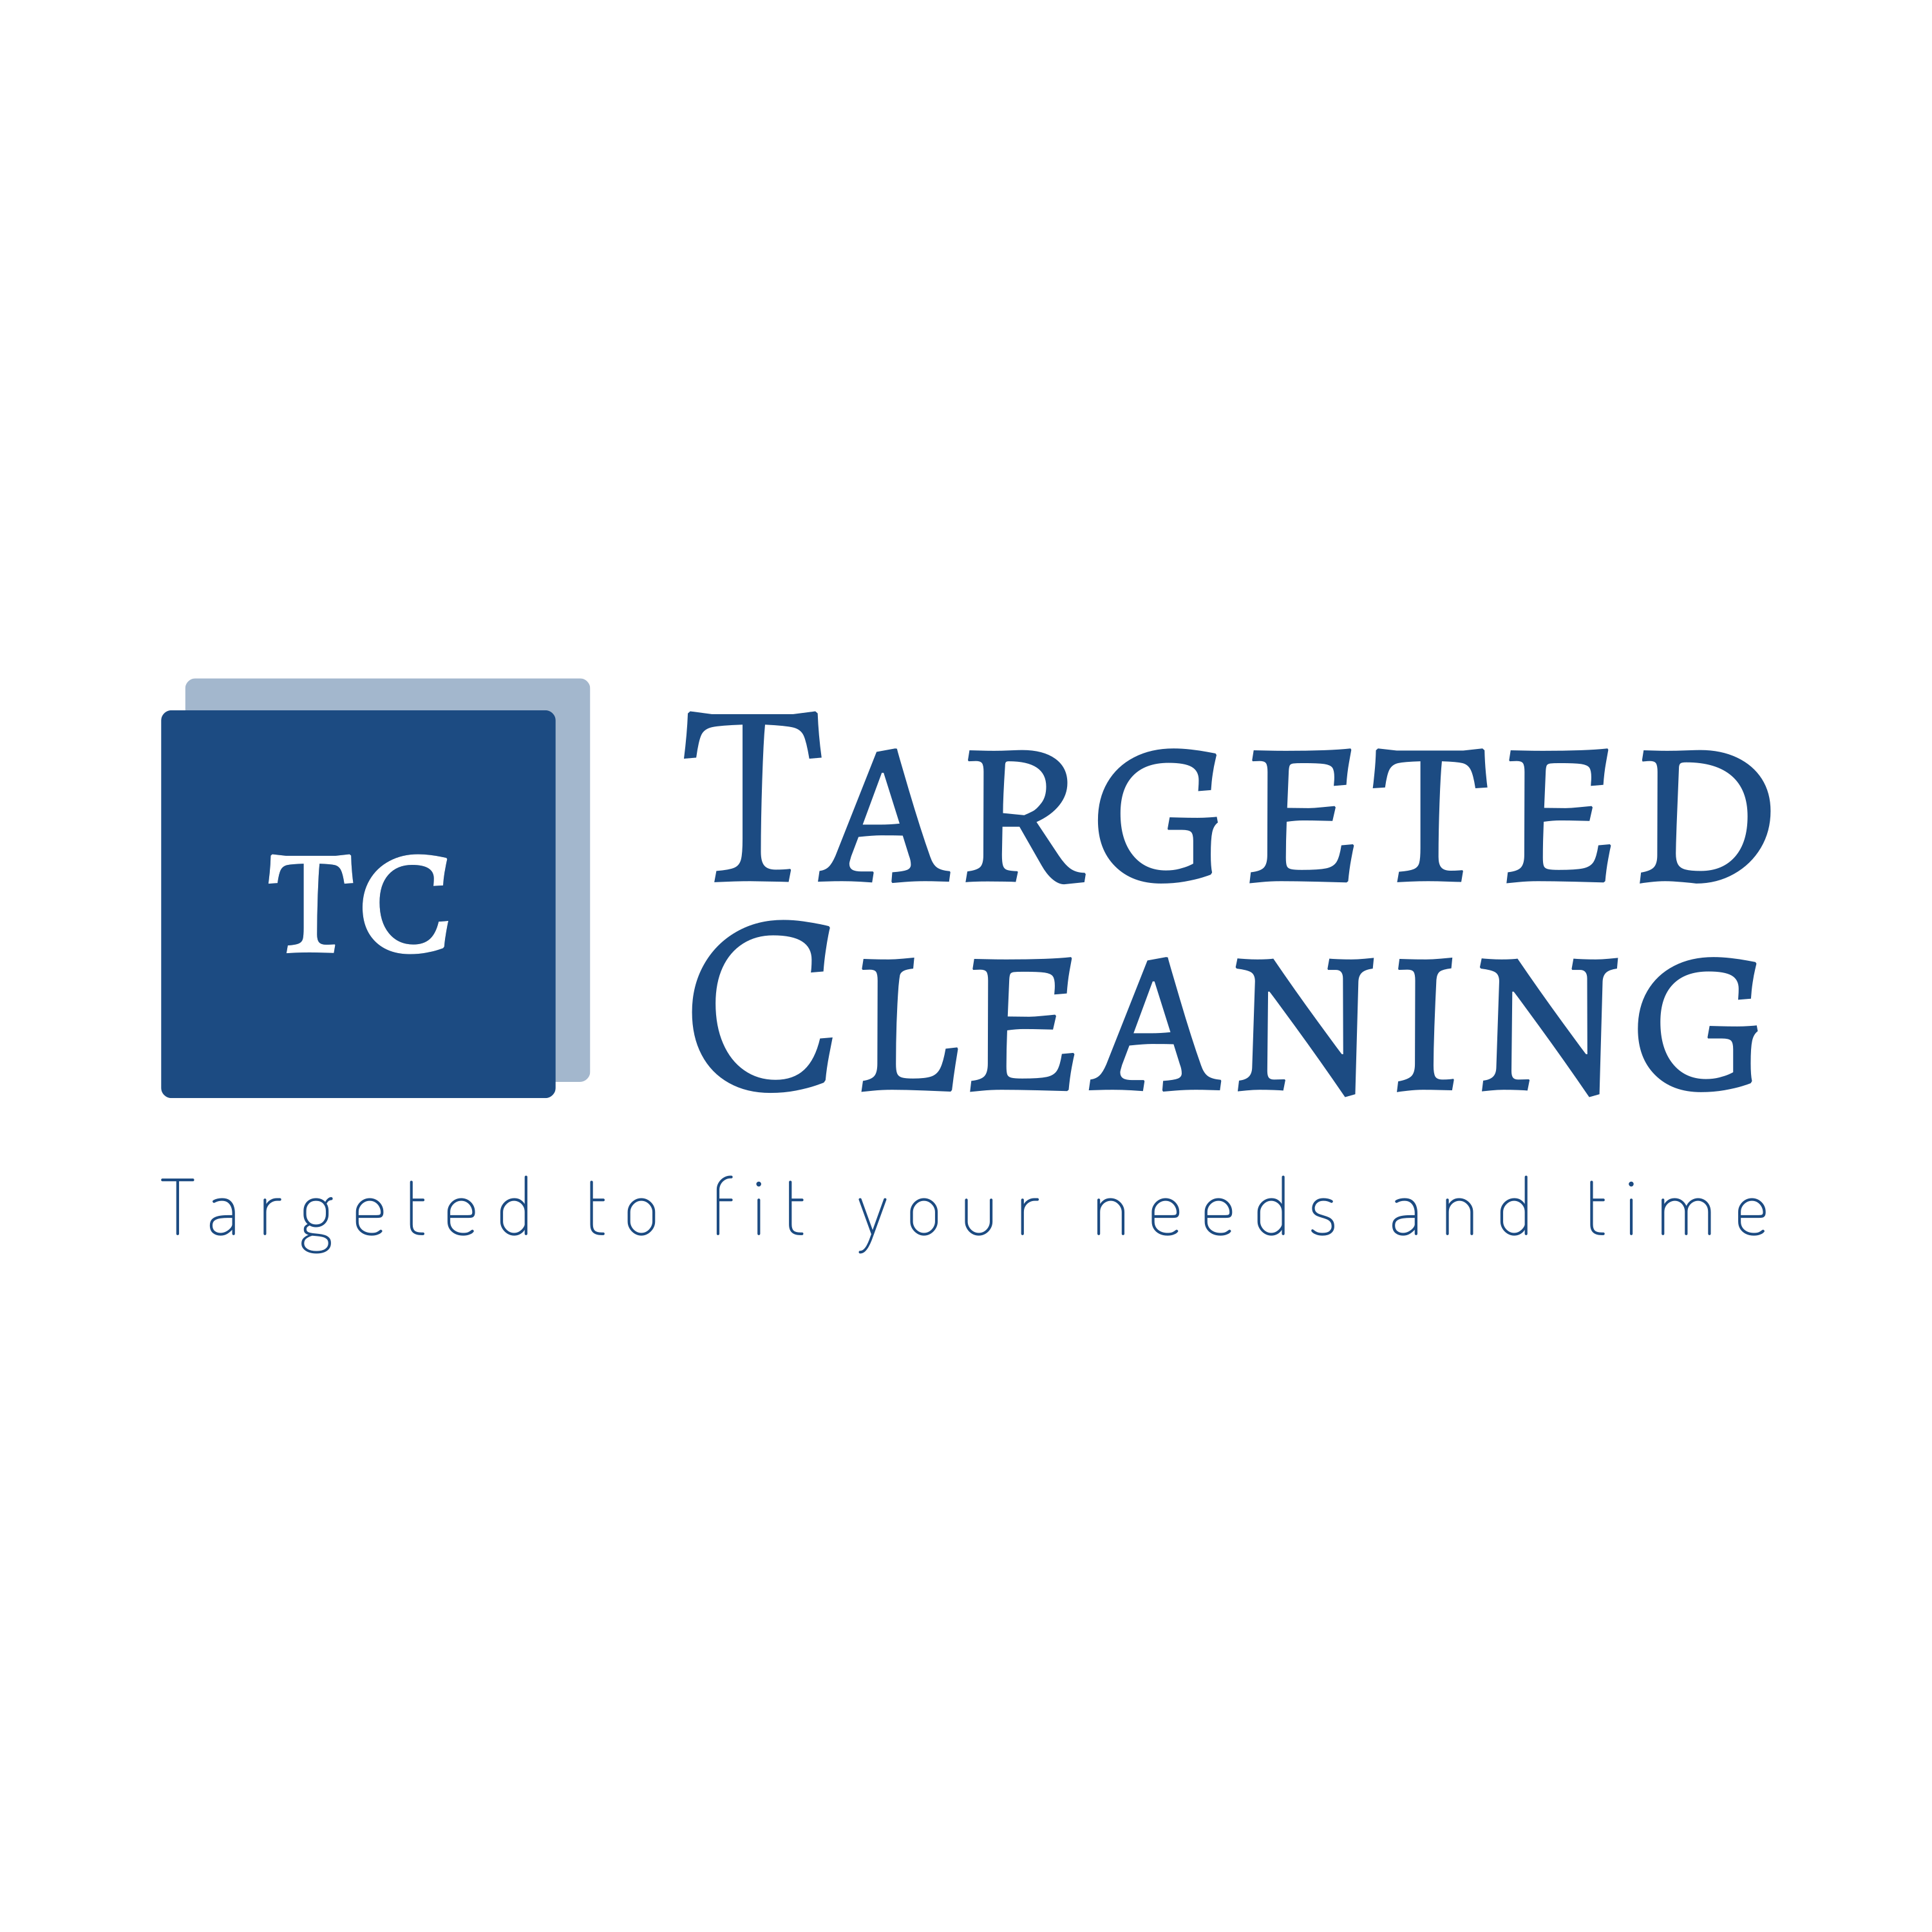 Targeted Cleaning